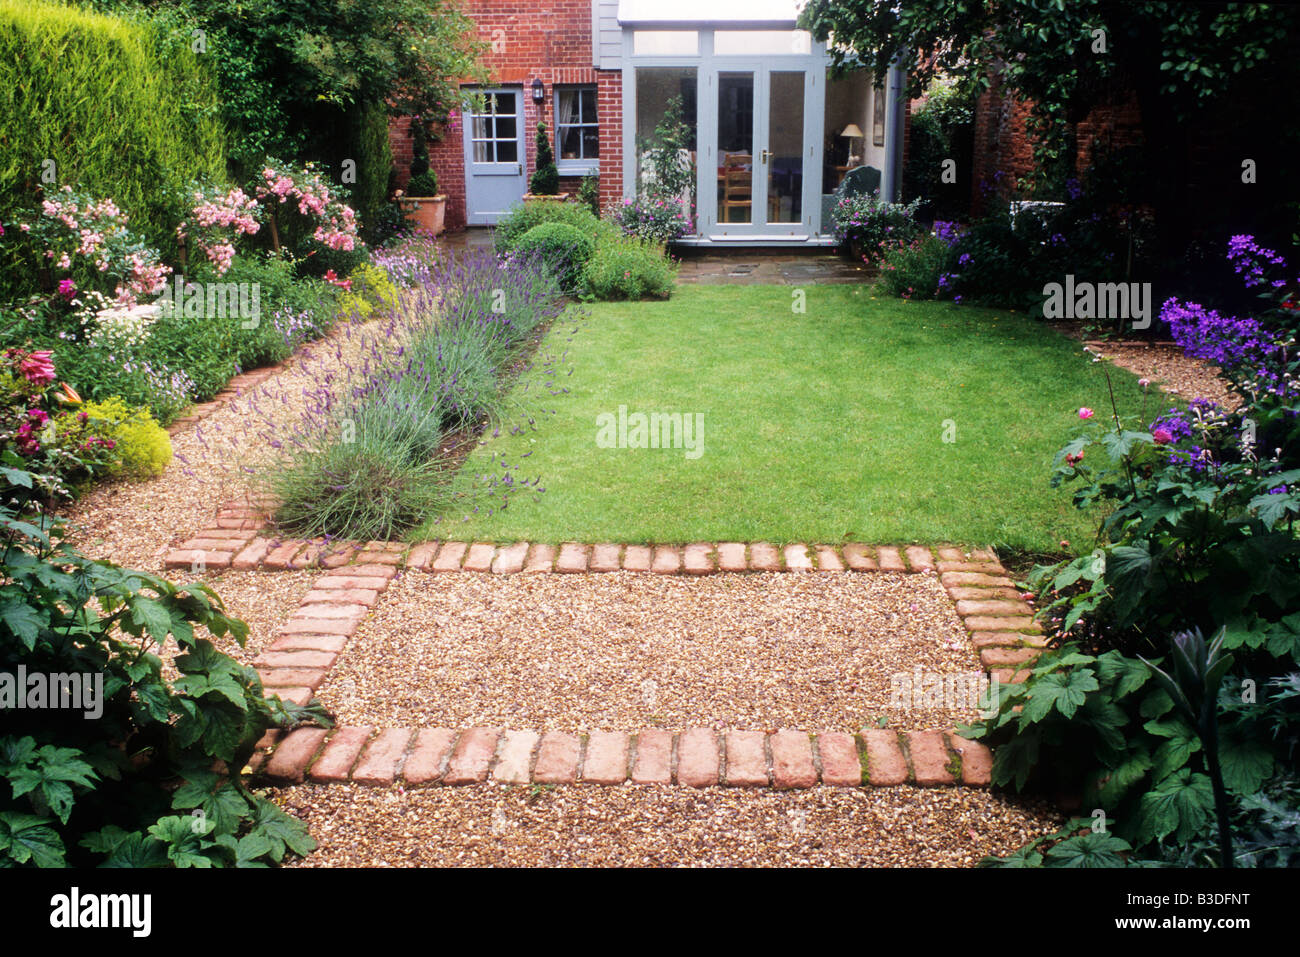 Elegant Small Back Garden Lawn Border Hedge Brick And Gravel Path Pink Rosa U0027The  Fairyu0027